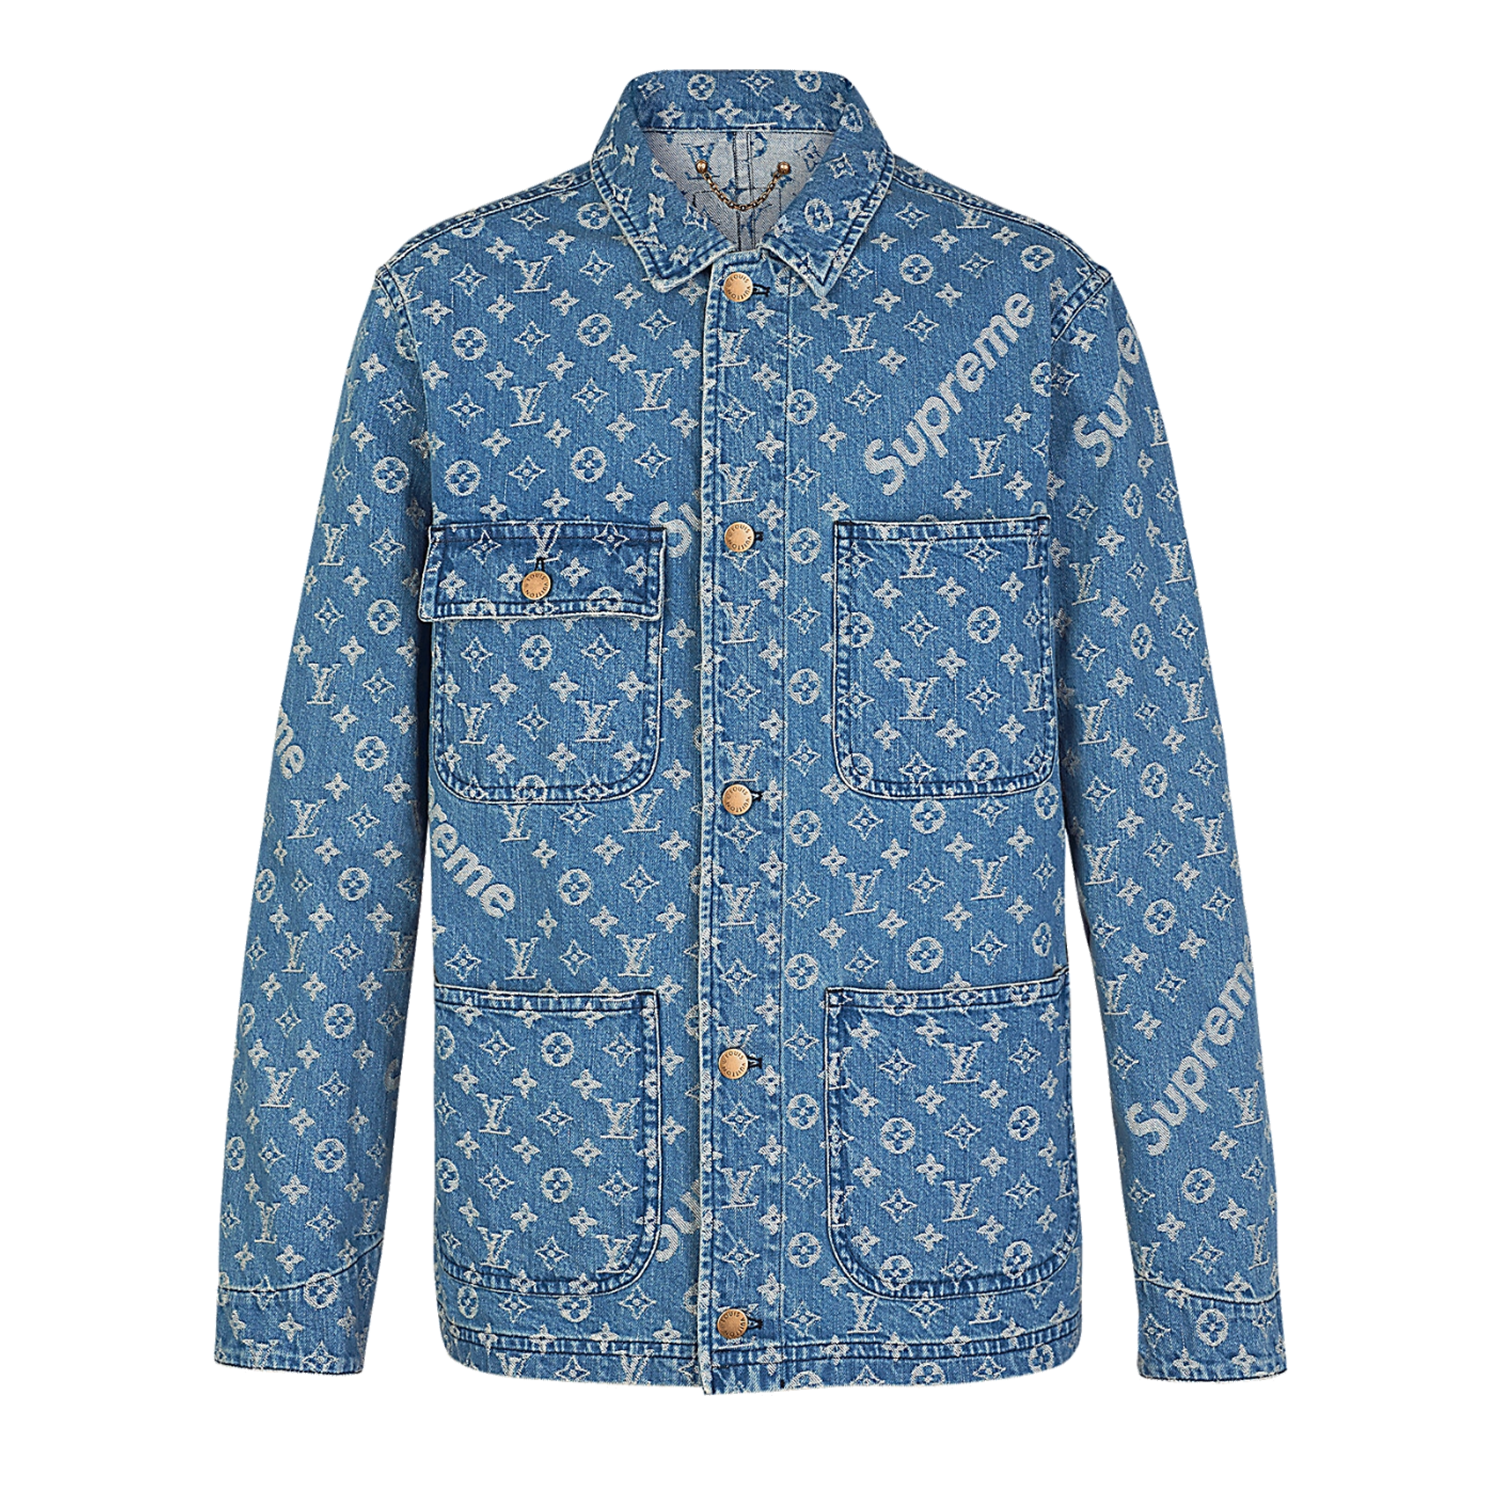 BARN JACKET  - €1750 $21801A3FI0MONOGRAM DENIM BLUE